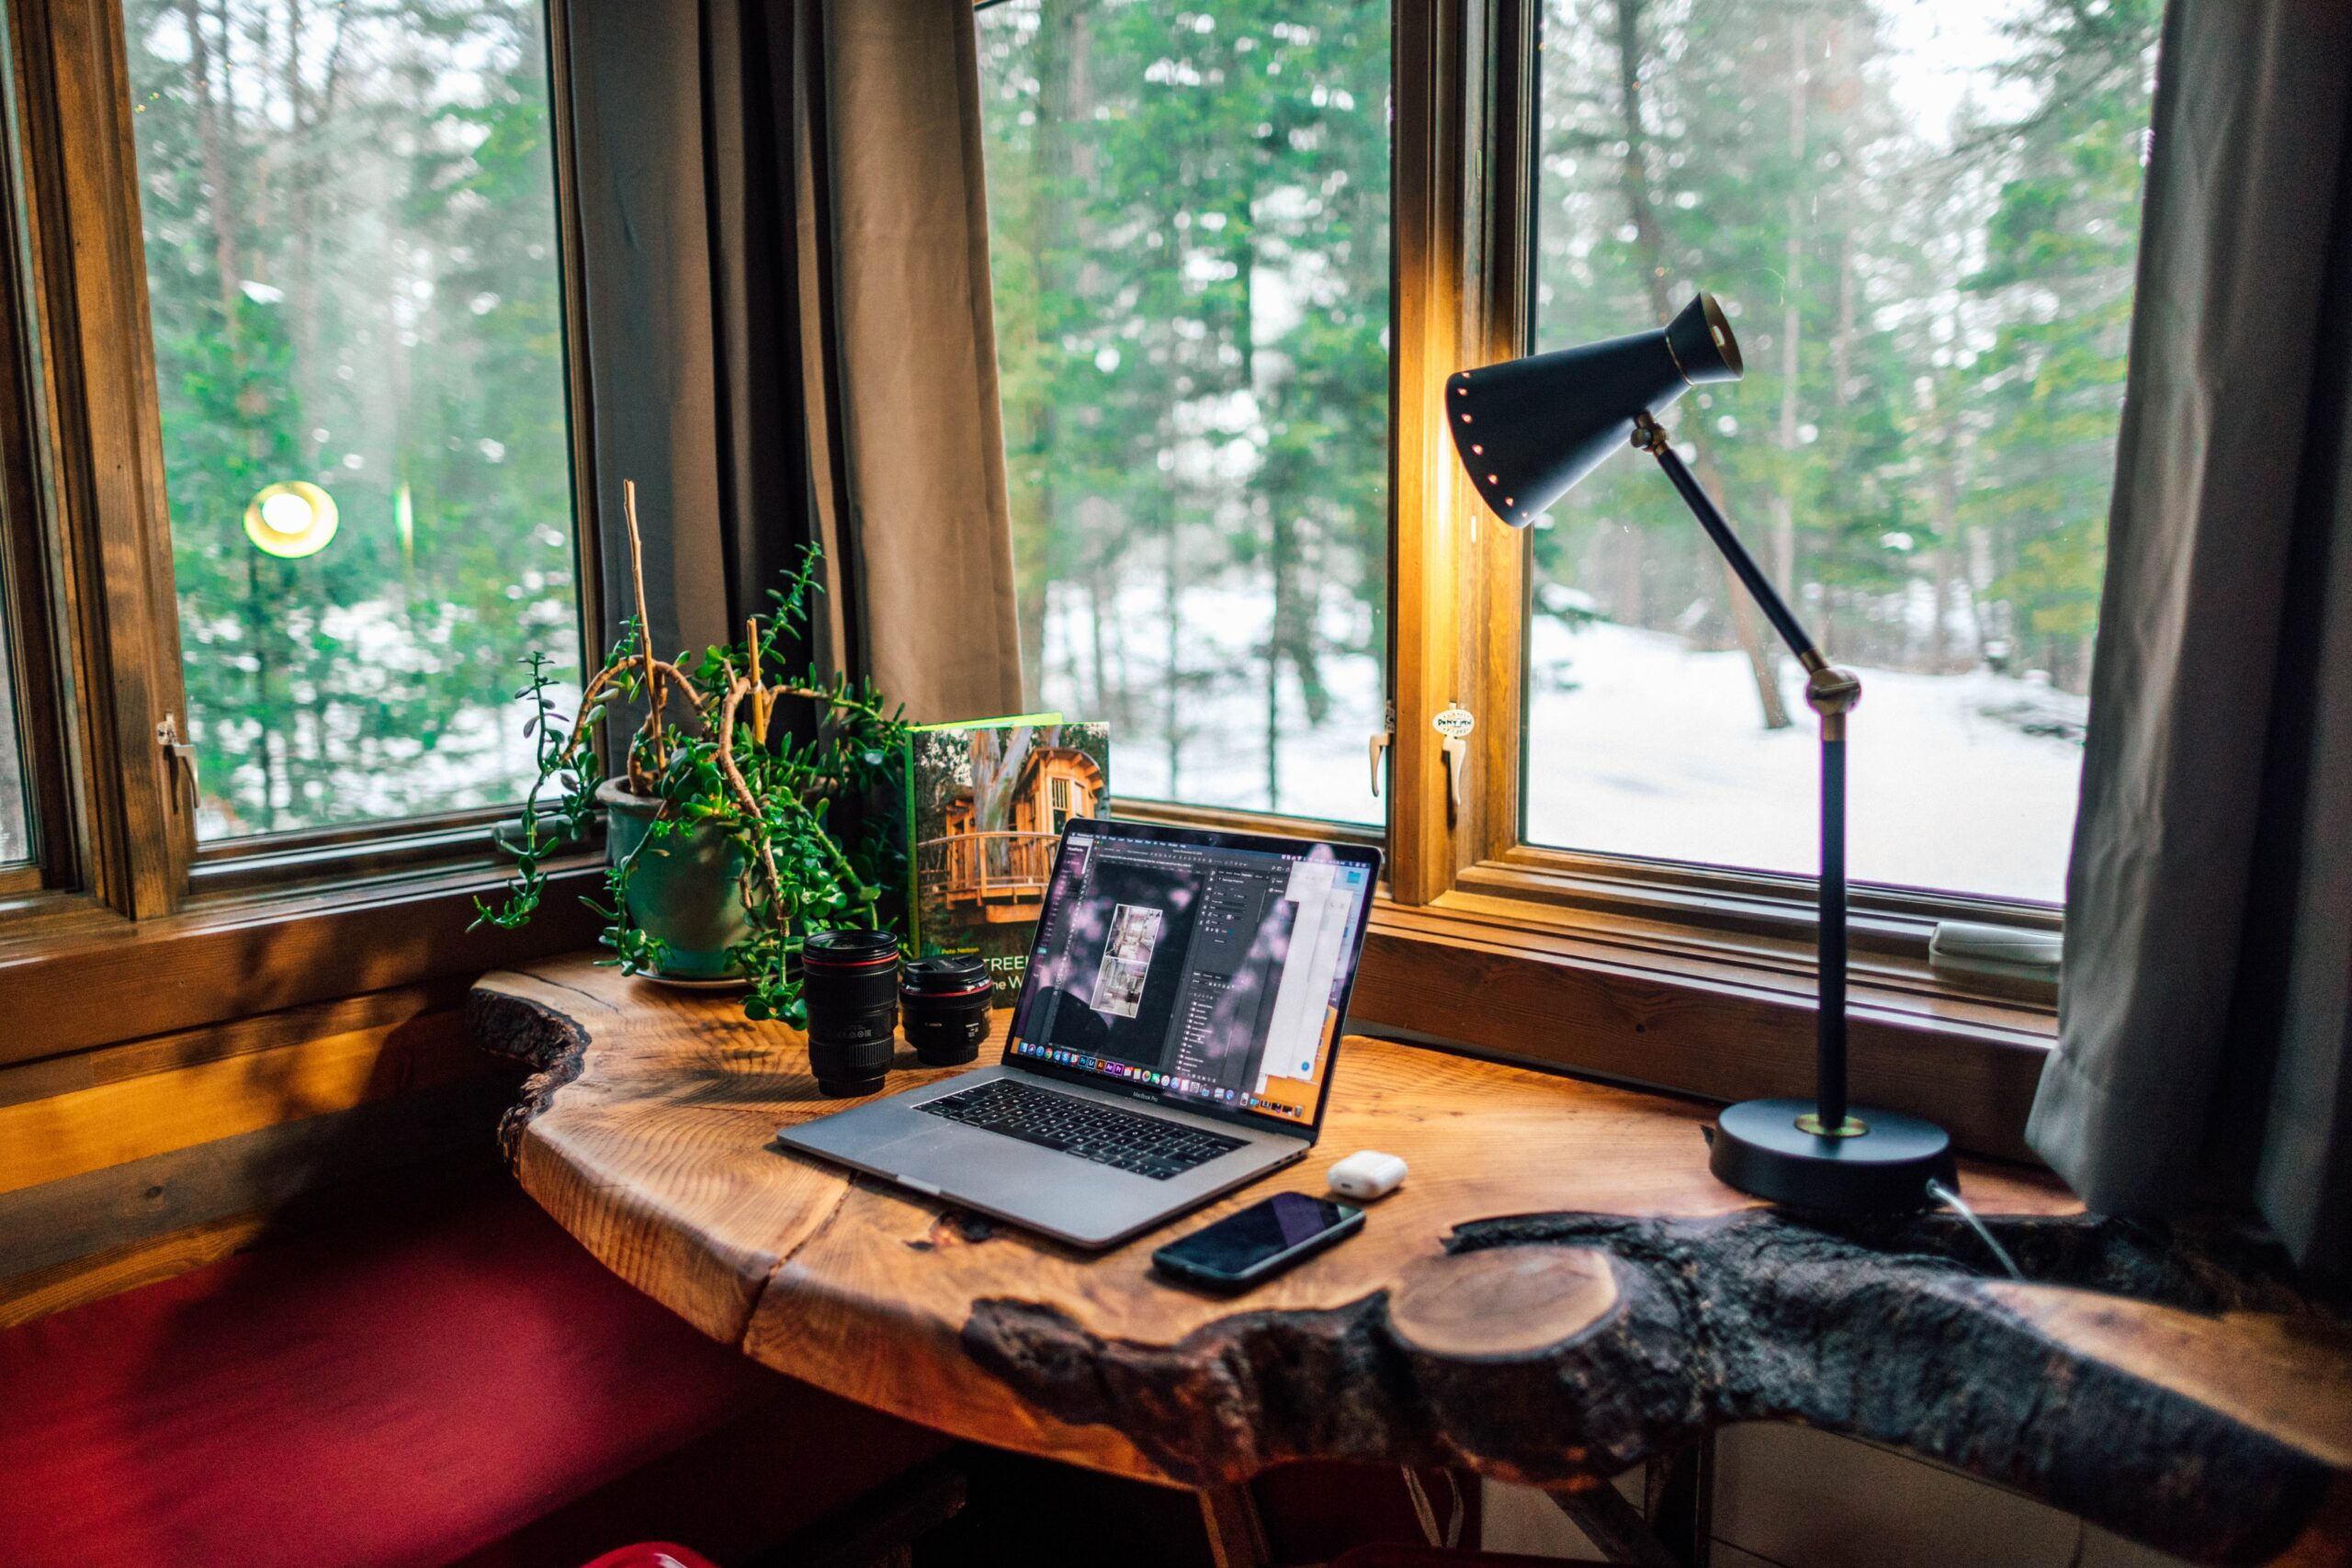 home office setup with laptop and lamp on wooden desk by window or remote workforce